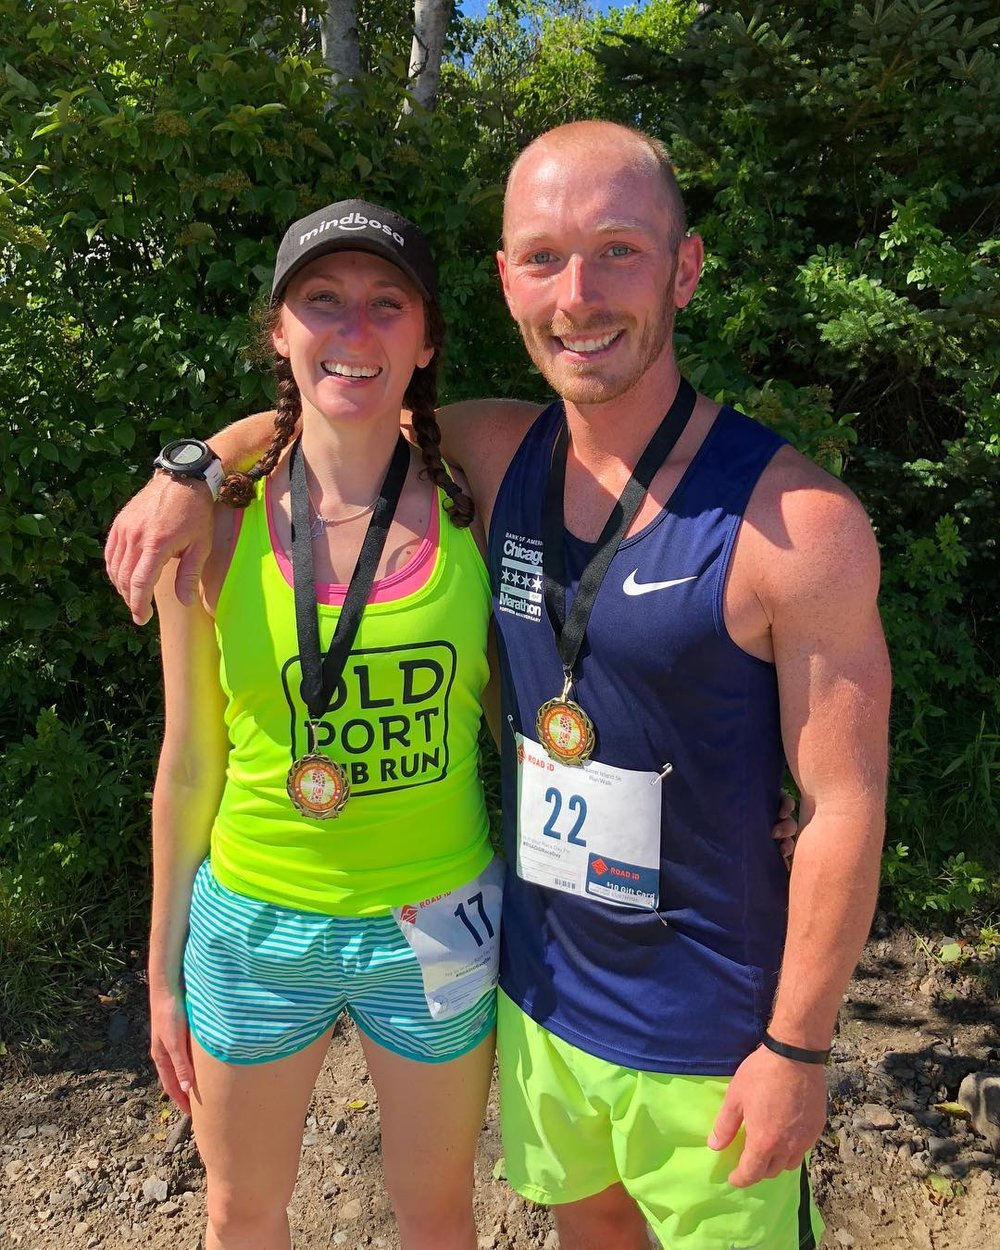 Couples who run together AND save money together, stay together! Leslie and Grant are tracking and saving money for every mile they run to help fund their fall wedding!